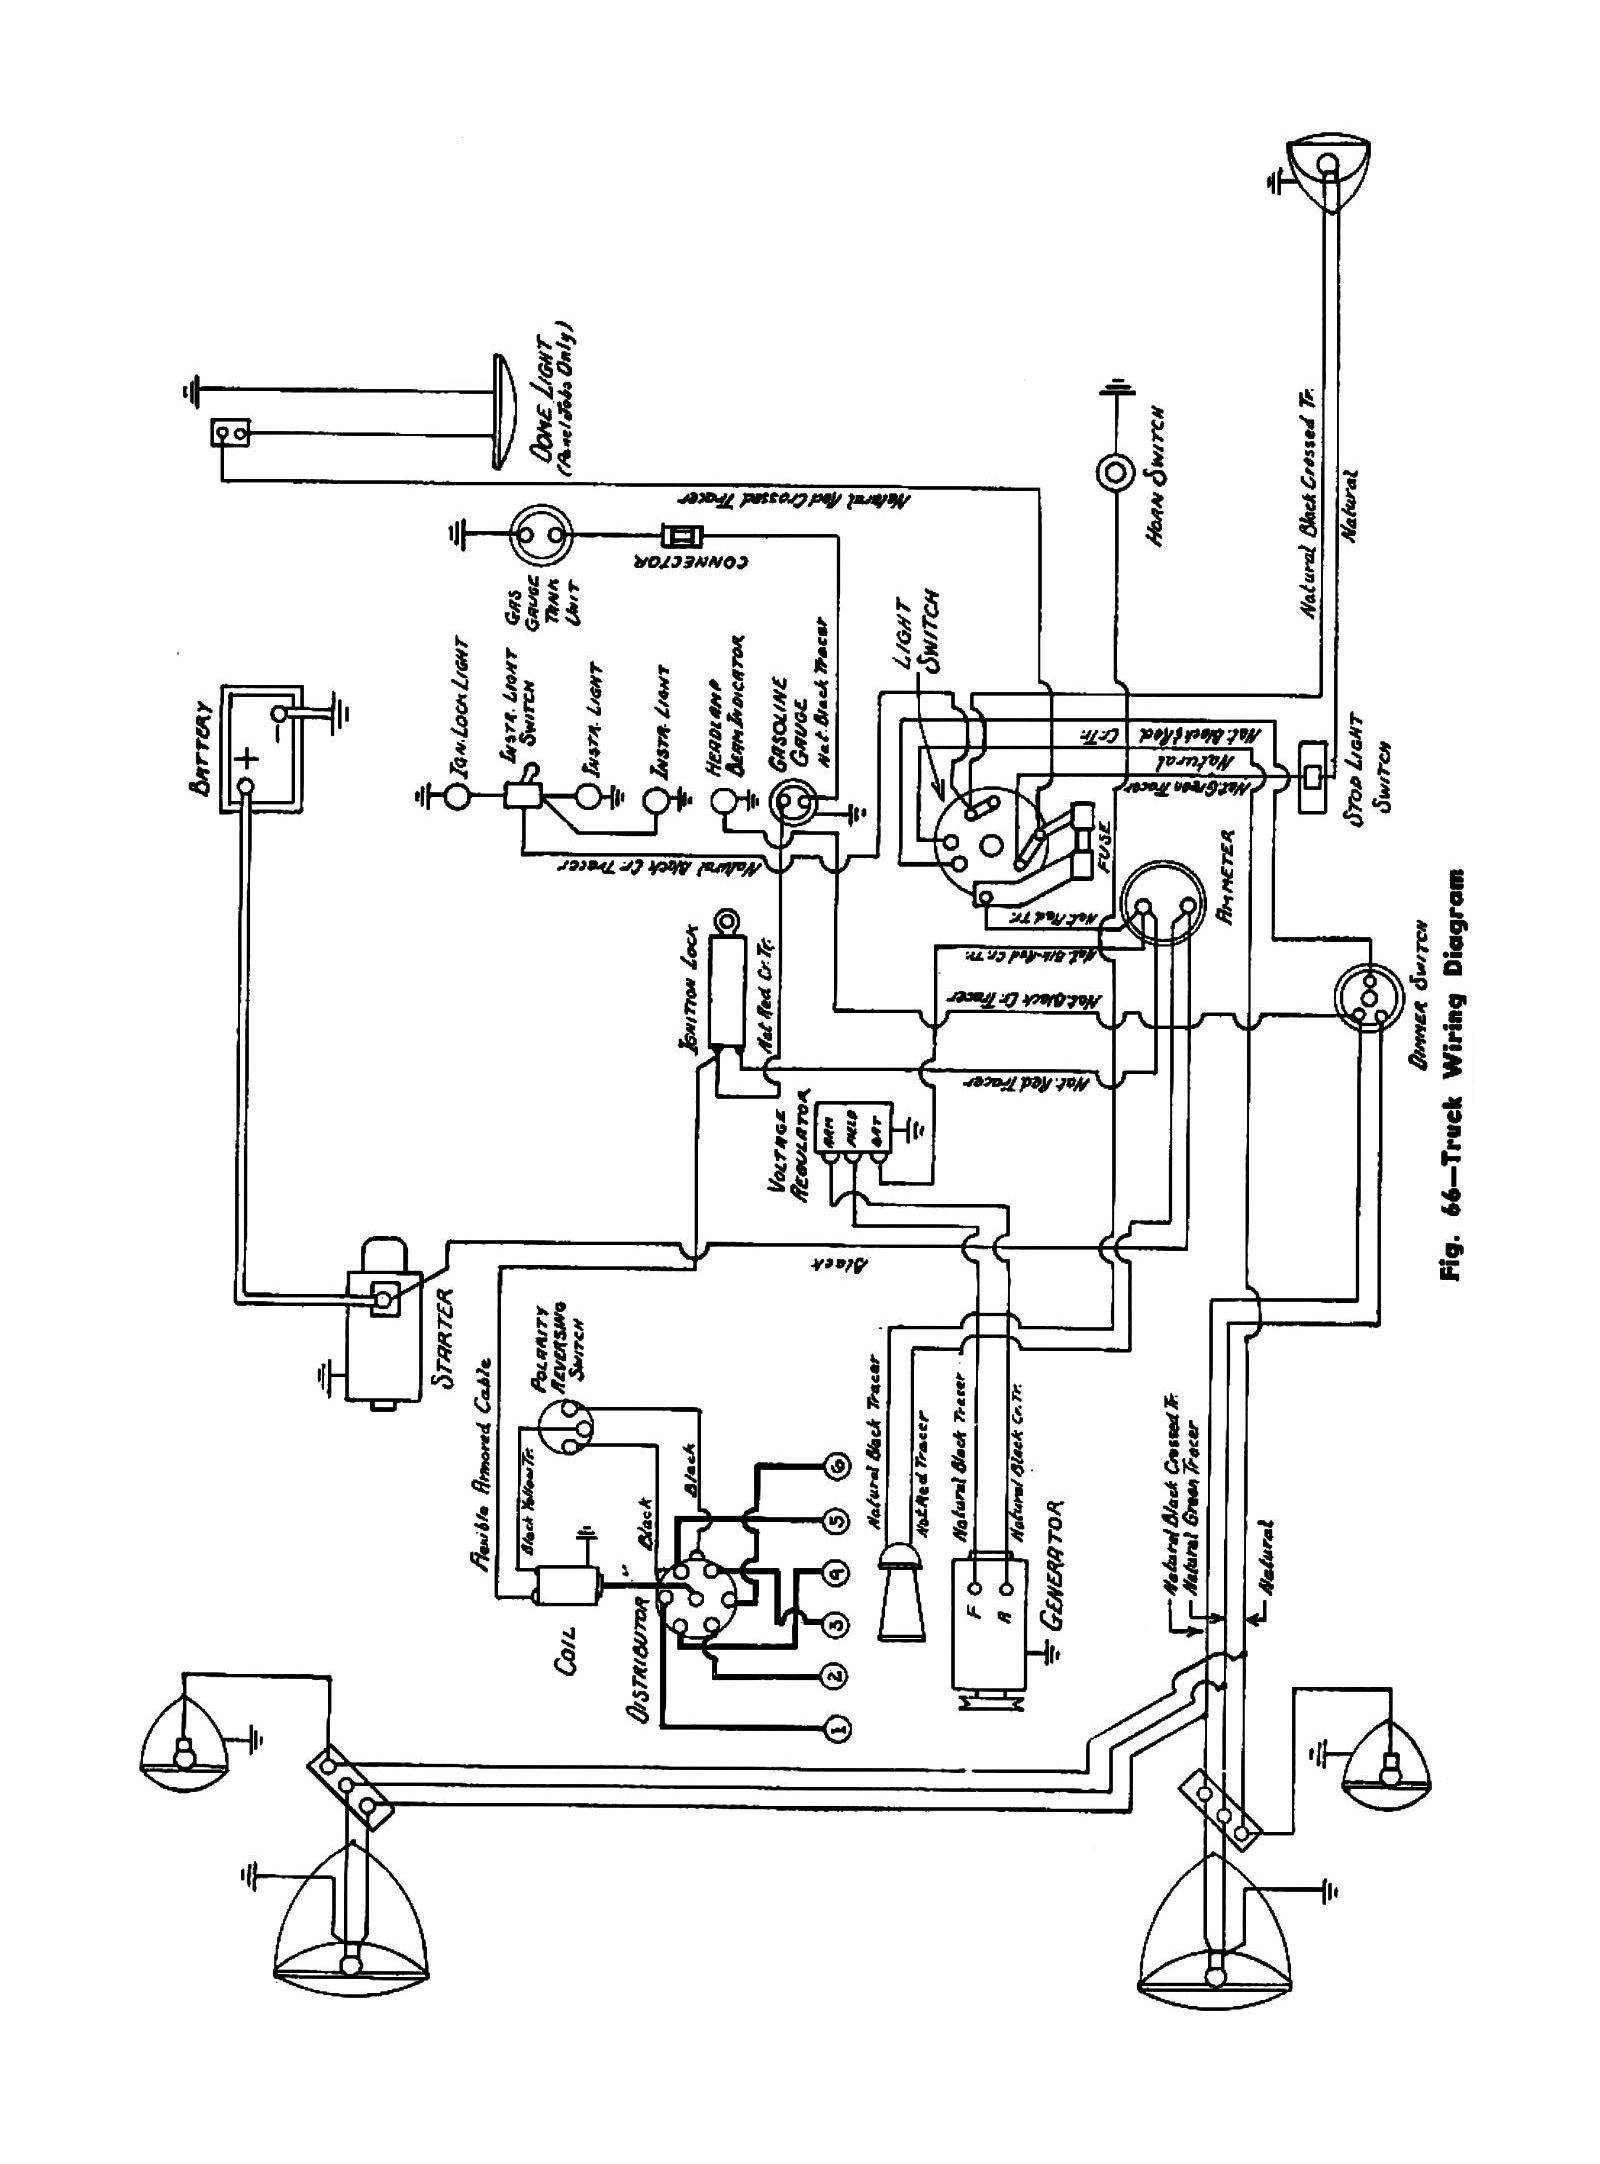 galaxy remote starter wiring diagram with 1946 Chevy Wiring Diagram on Ford Windstar Second Generation Mk2 2003 Fuse Box Diagram further Seite 753 additionally Installdiagrams furthermore 1946 Chevy wiring diagram additionally Scytek Remote Start Wiring Diagram.